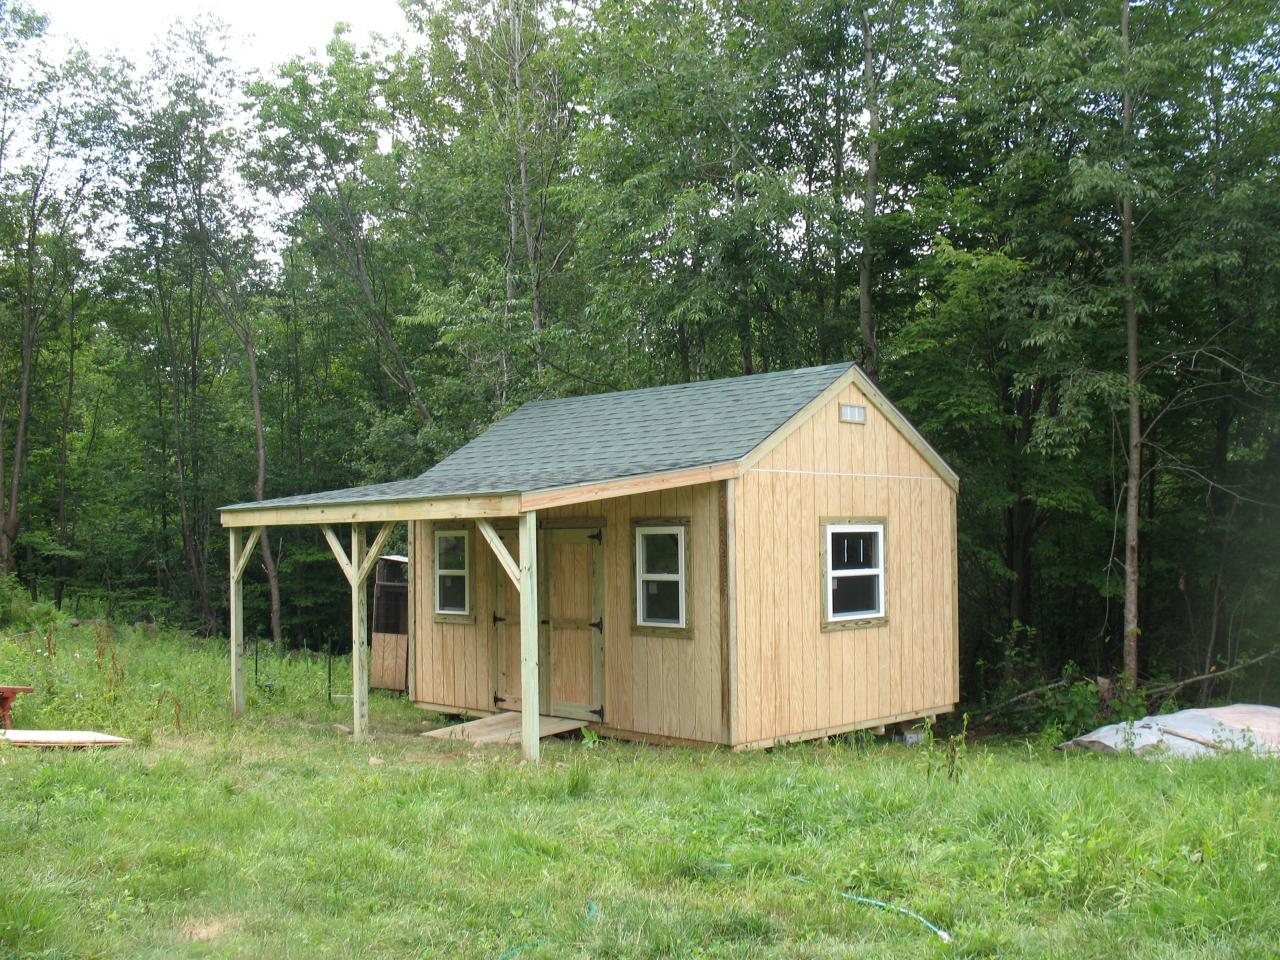 Storage sheds vermont style for Custom storage sheds